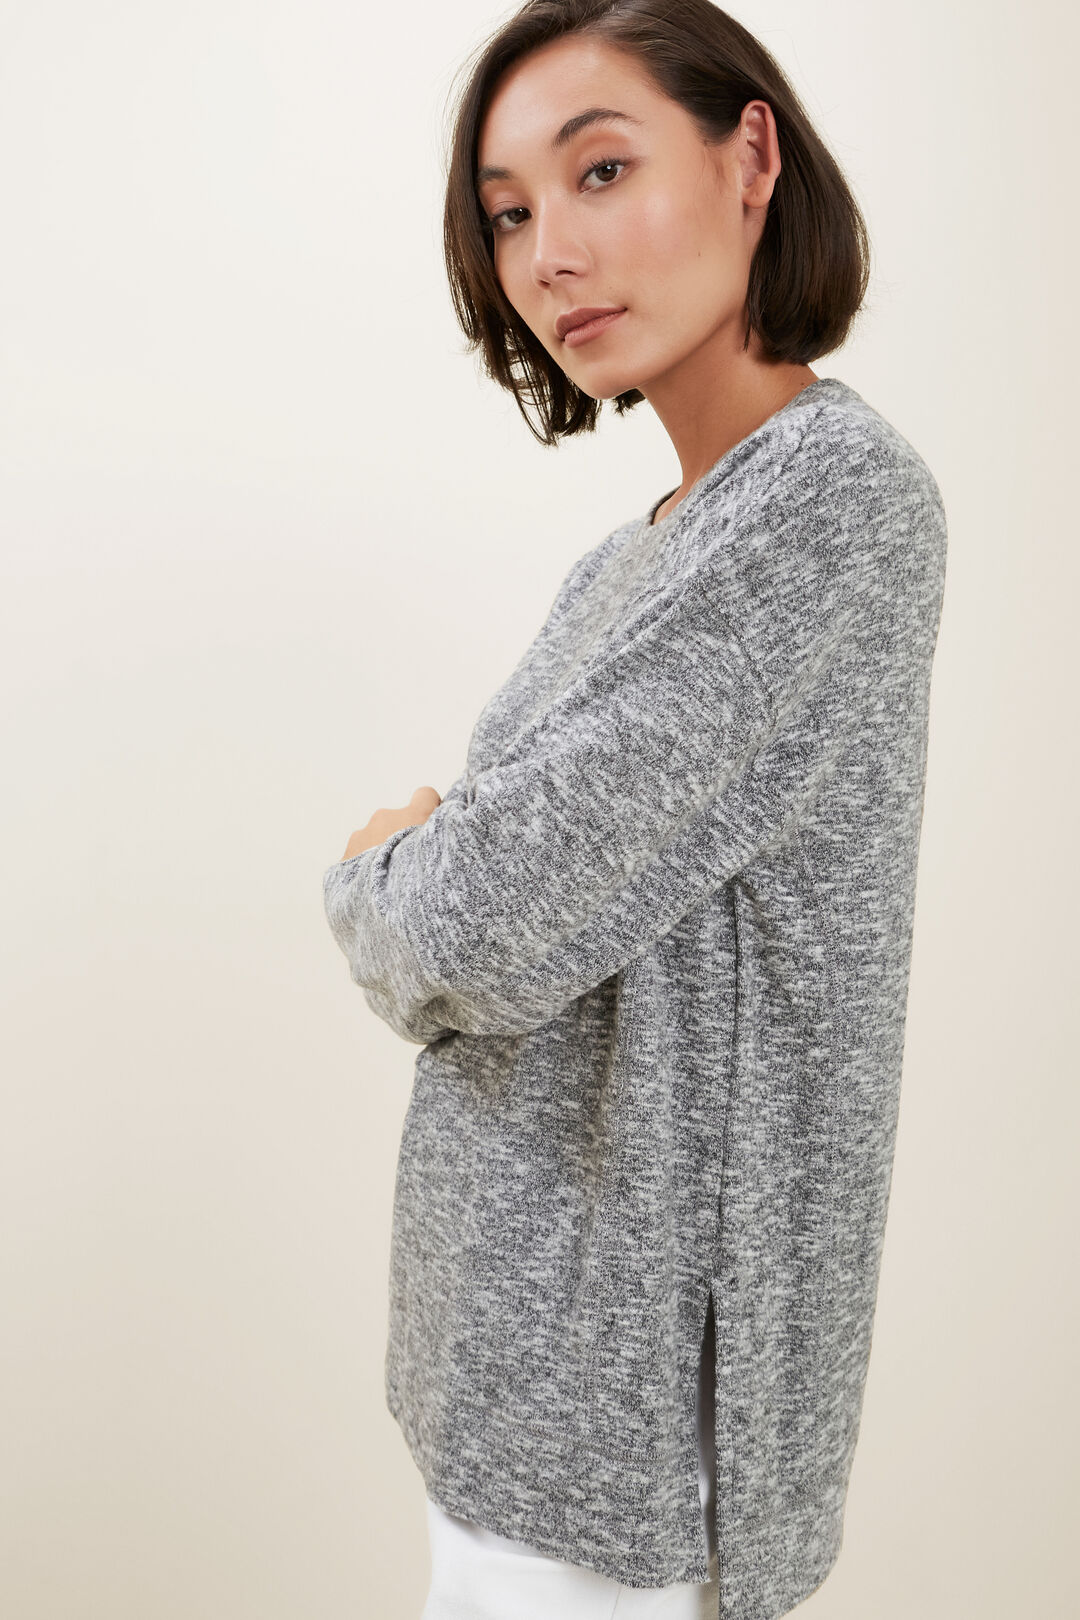 Supersoft  Sweater  SHADOW GREY MARLE  hi-res